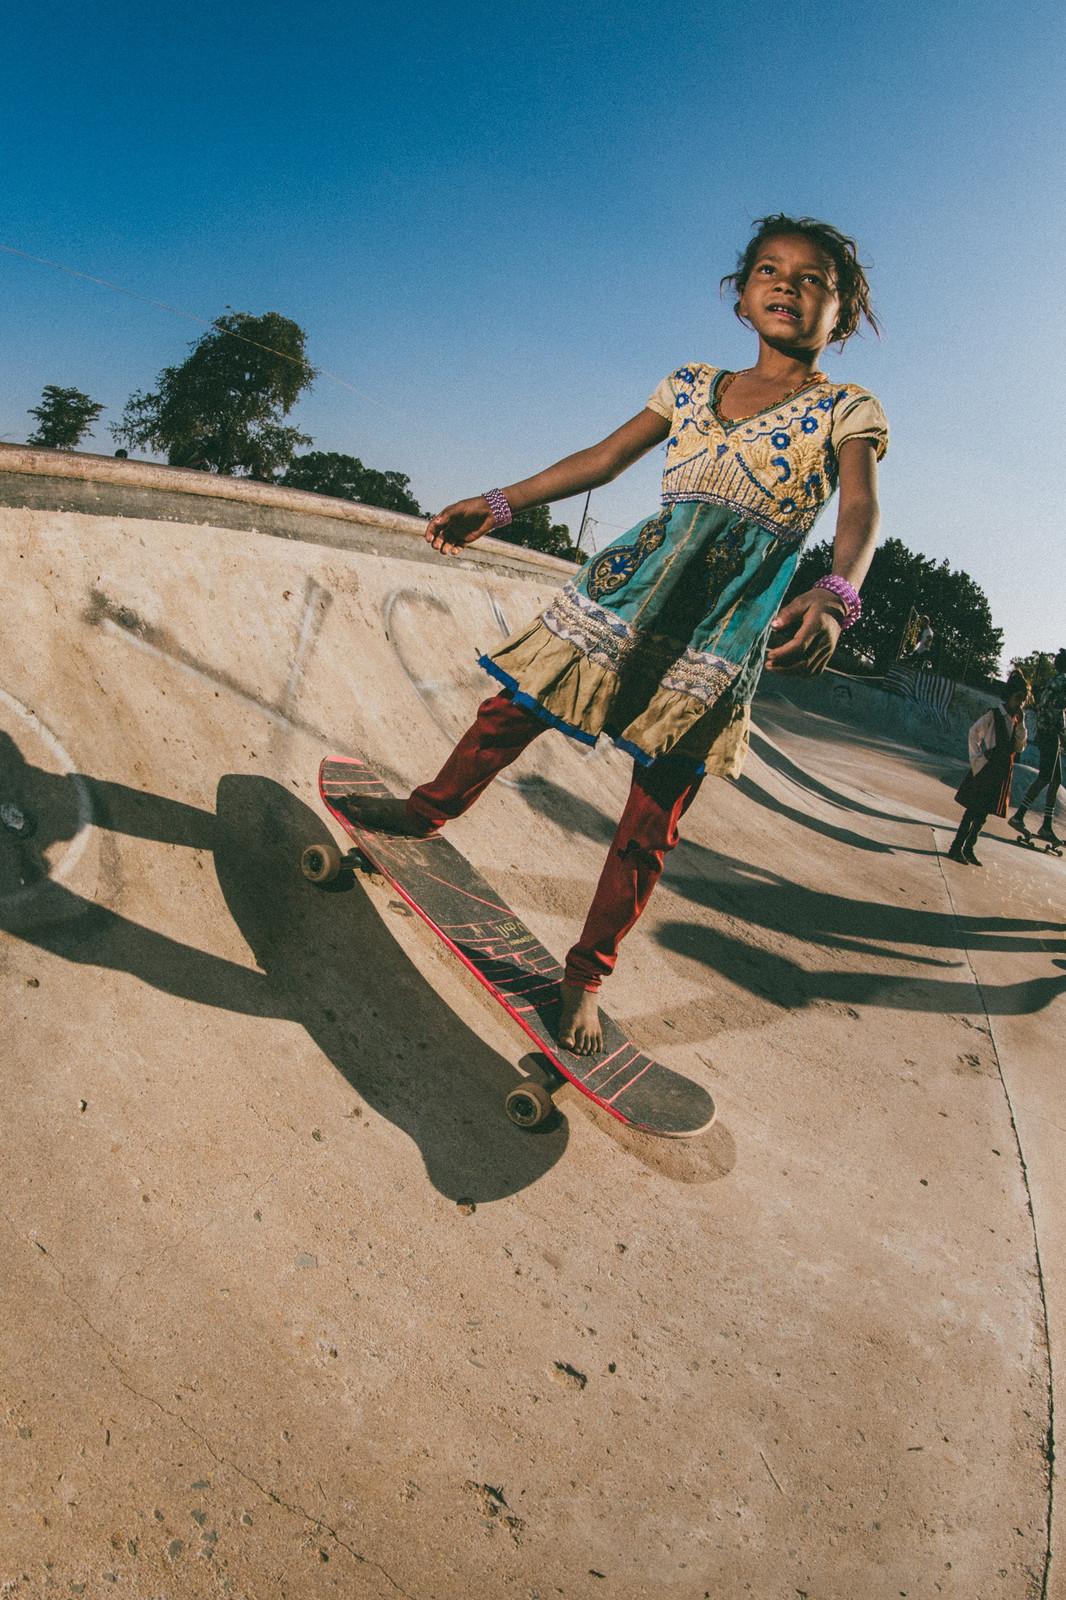 8ed06a1a77 Atita Verghese   Lizzie Armanto  Power Of Girls Skateboarding In India